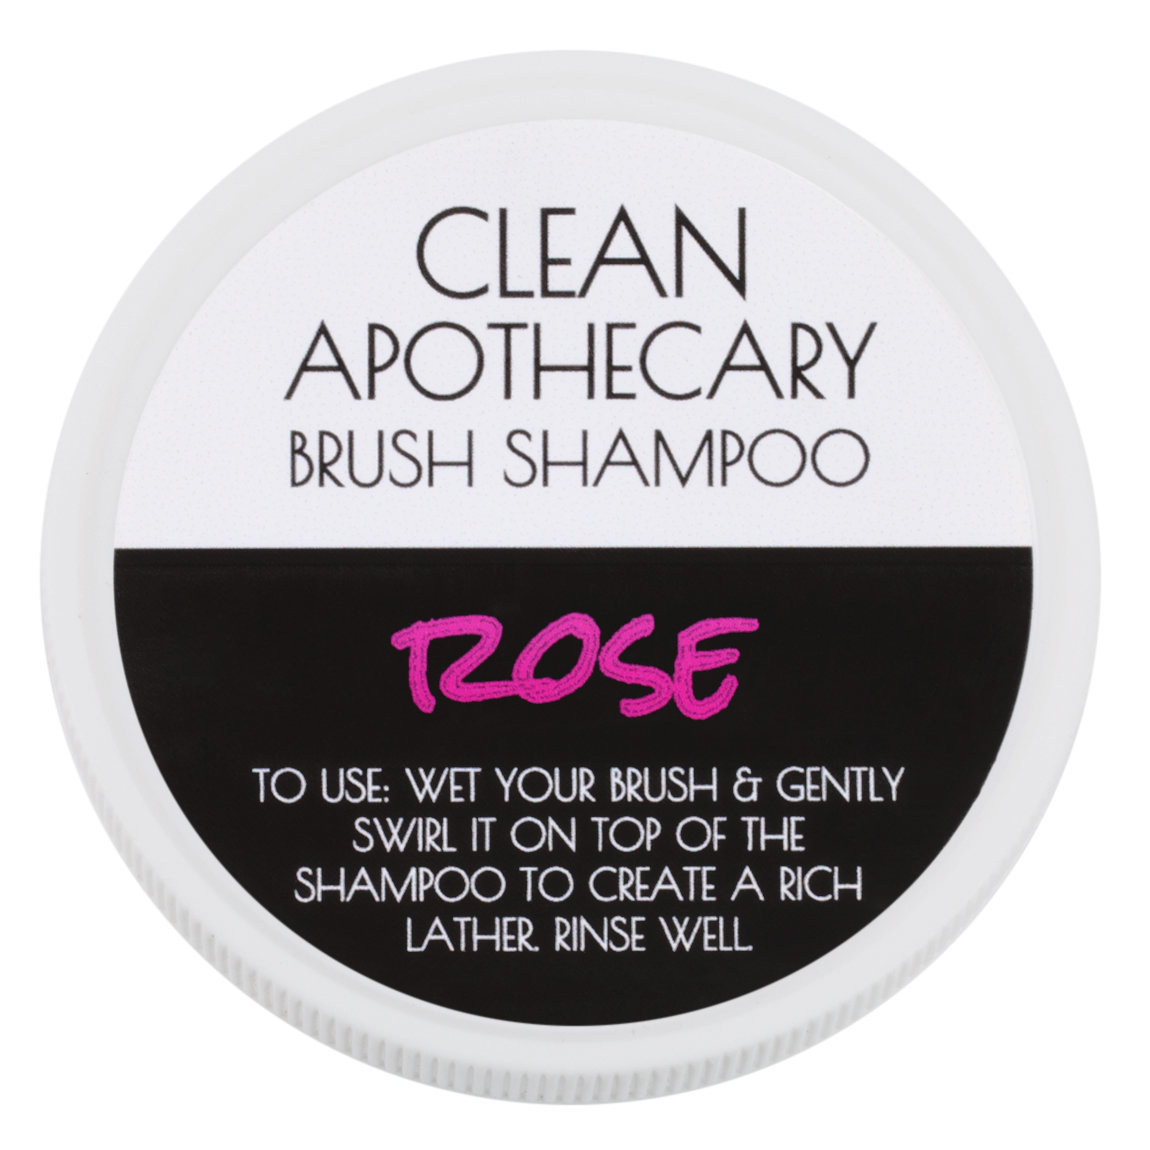 Clean Apothecary Brush Shampoo Rose product smear.